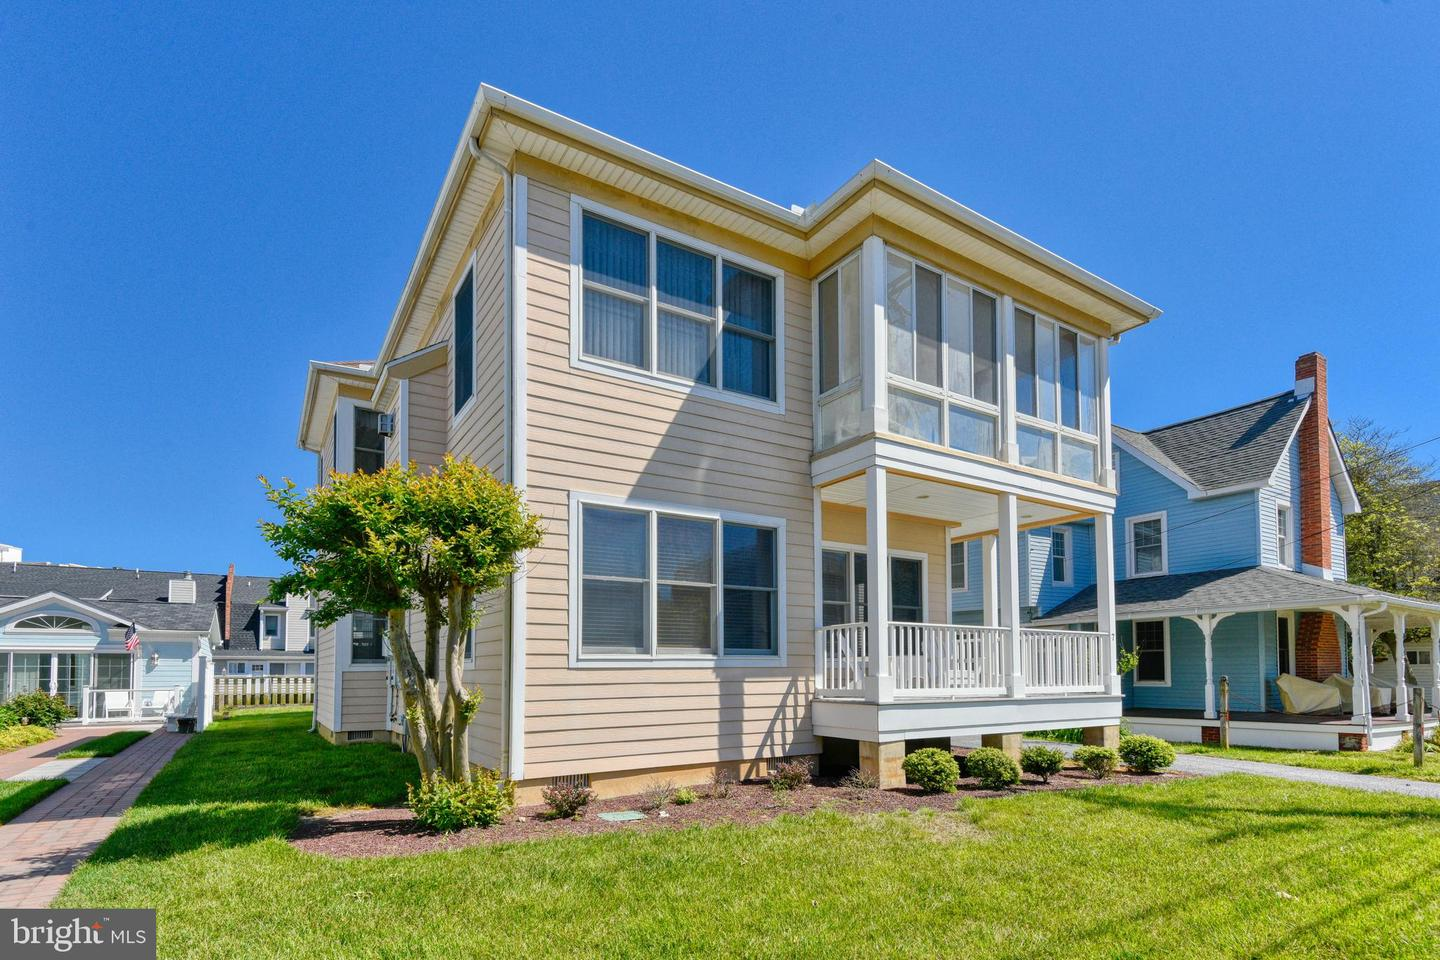 DESU140752-301729566184-2019-05-20-15-11-27 7 Olive Ave | Rehoboth Beach, DE Real Estate For Sale | MLS# Desu140752  - 1st Choice Properties